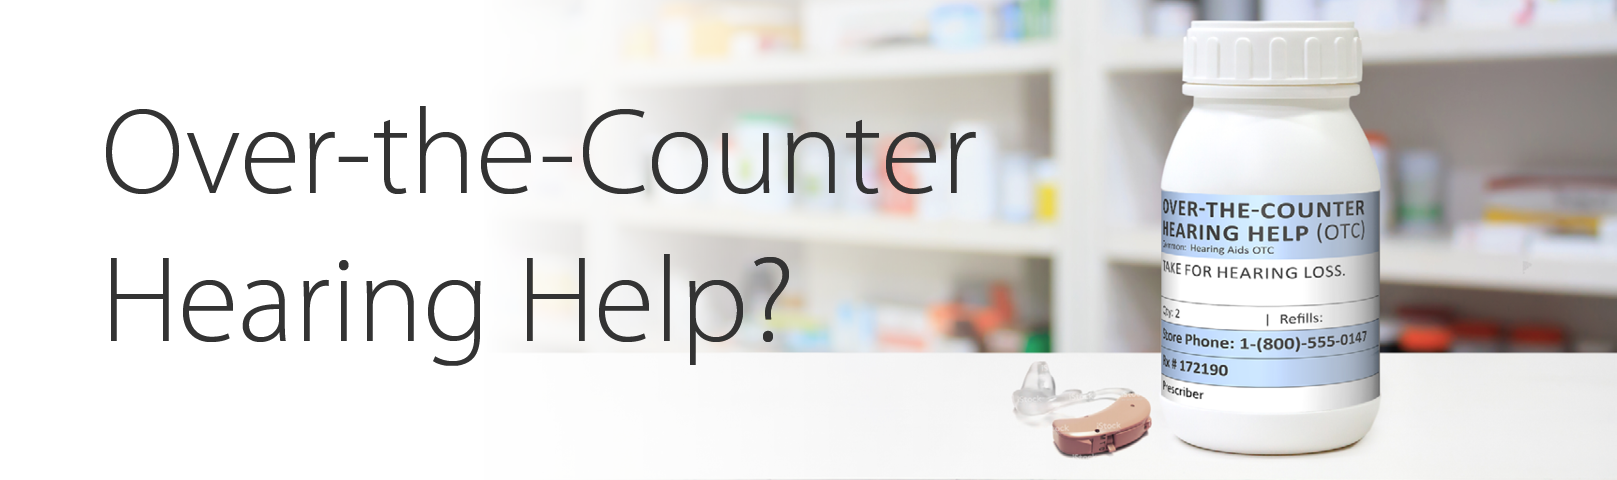 Over-the-Counter Hearing Help